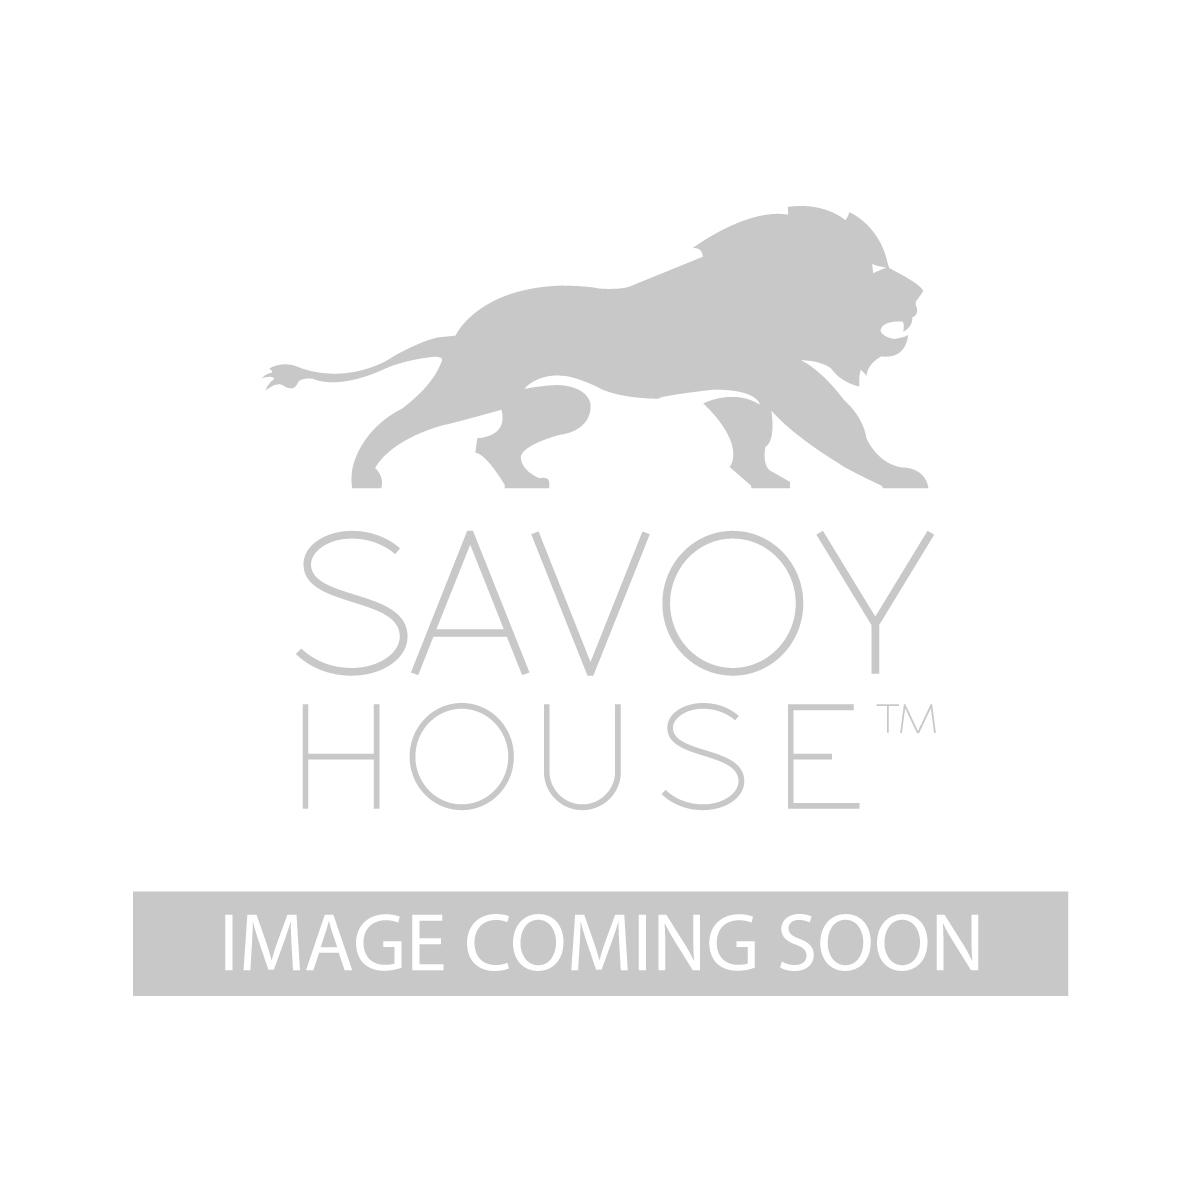 56 870 3cn 35 muir 56 inch 3 blade ceiling fan by savoy house muir 56 3 blade ceiling fan aloadofball Image collections